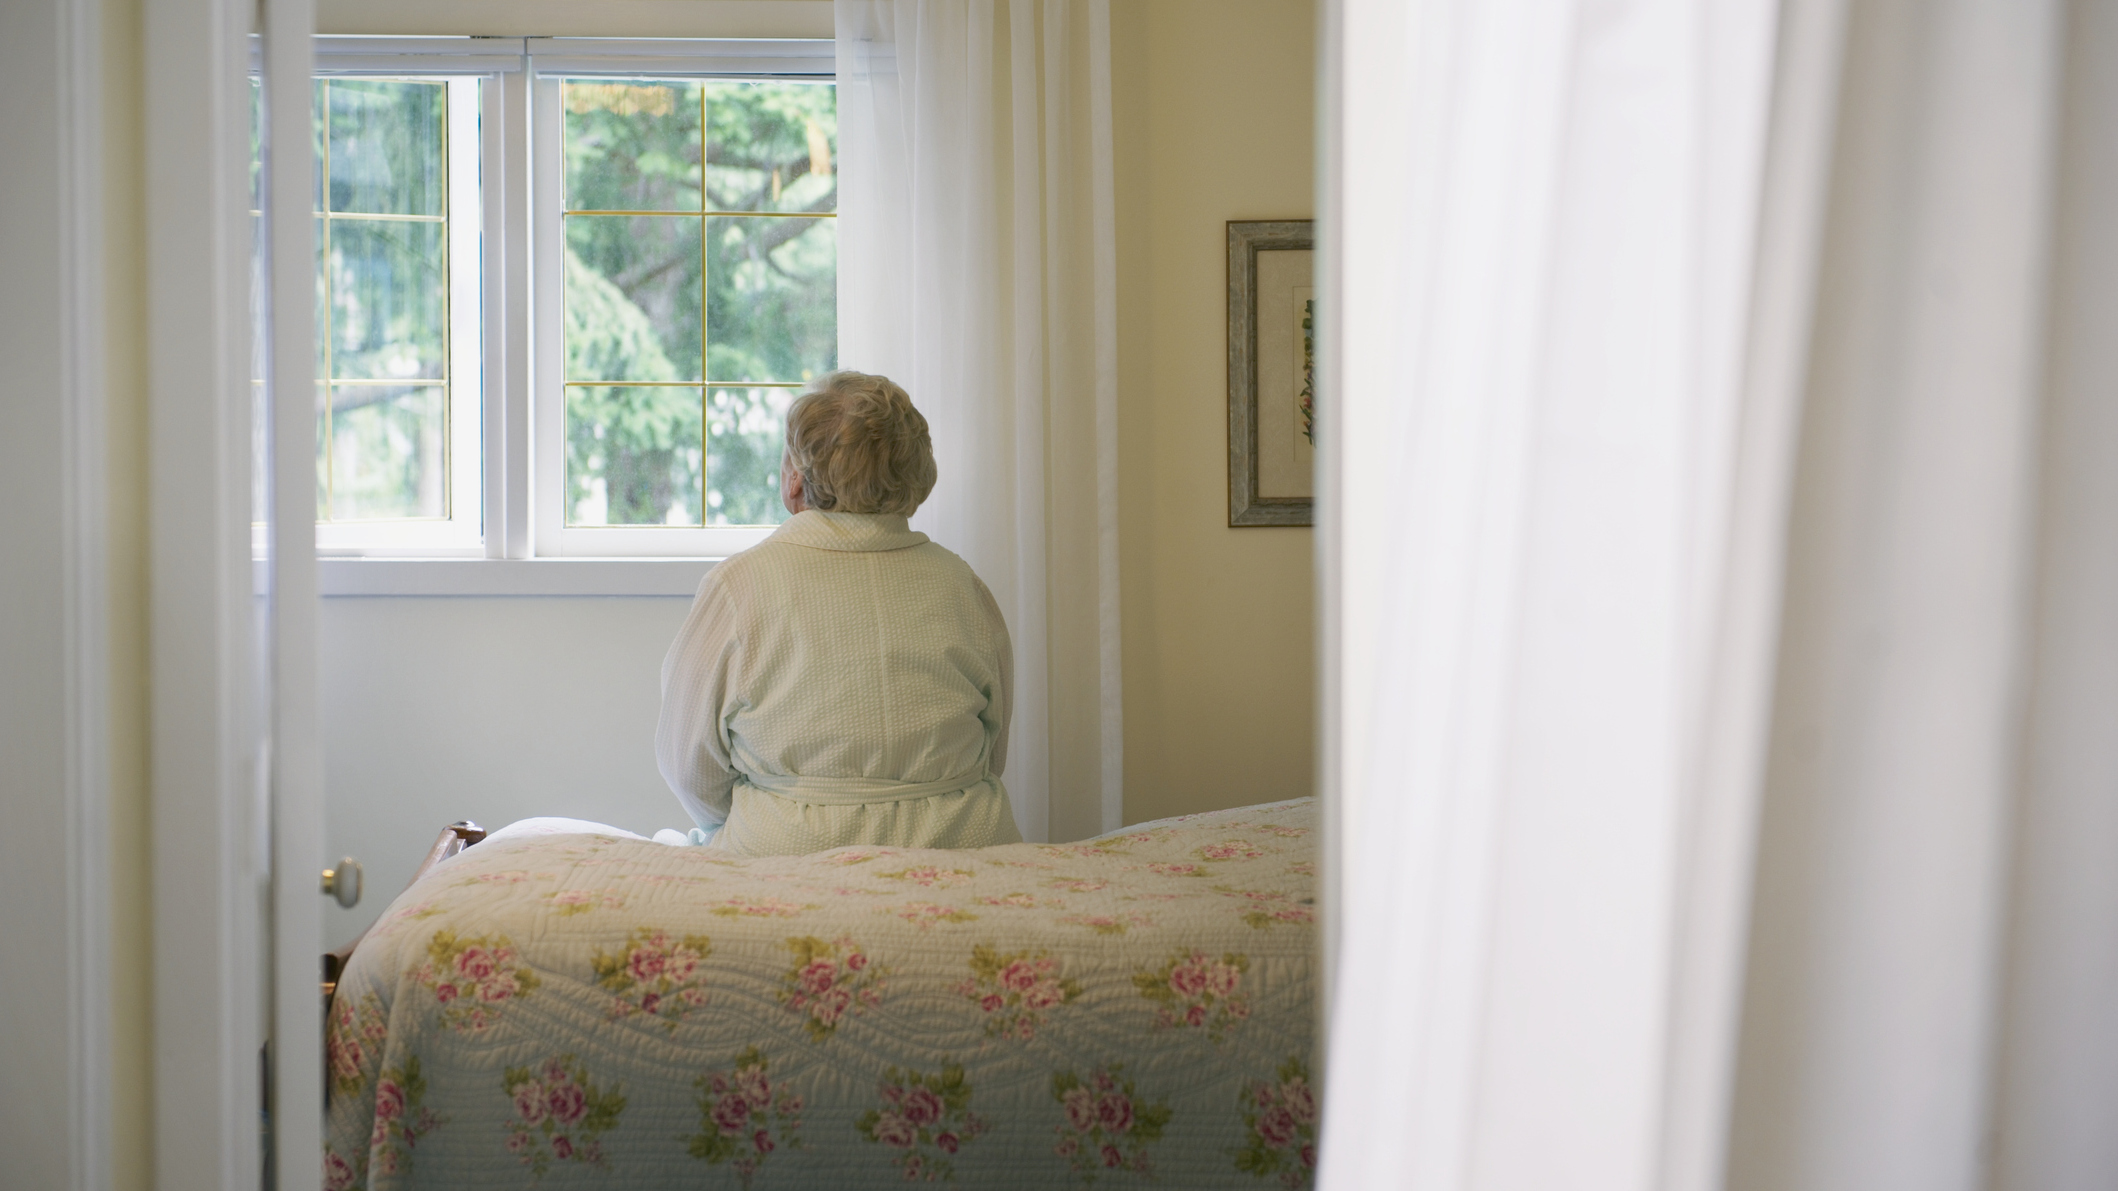 Trump Administration Cuts The Size Of Fines For Health Violations In Nursing Homes